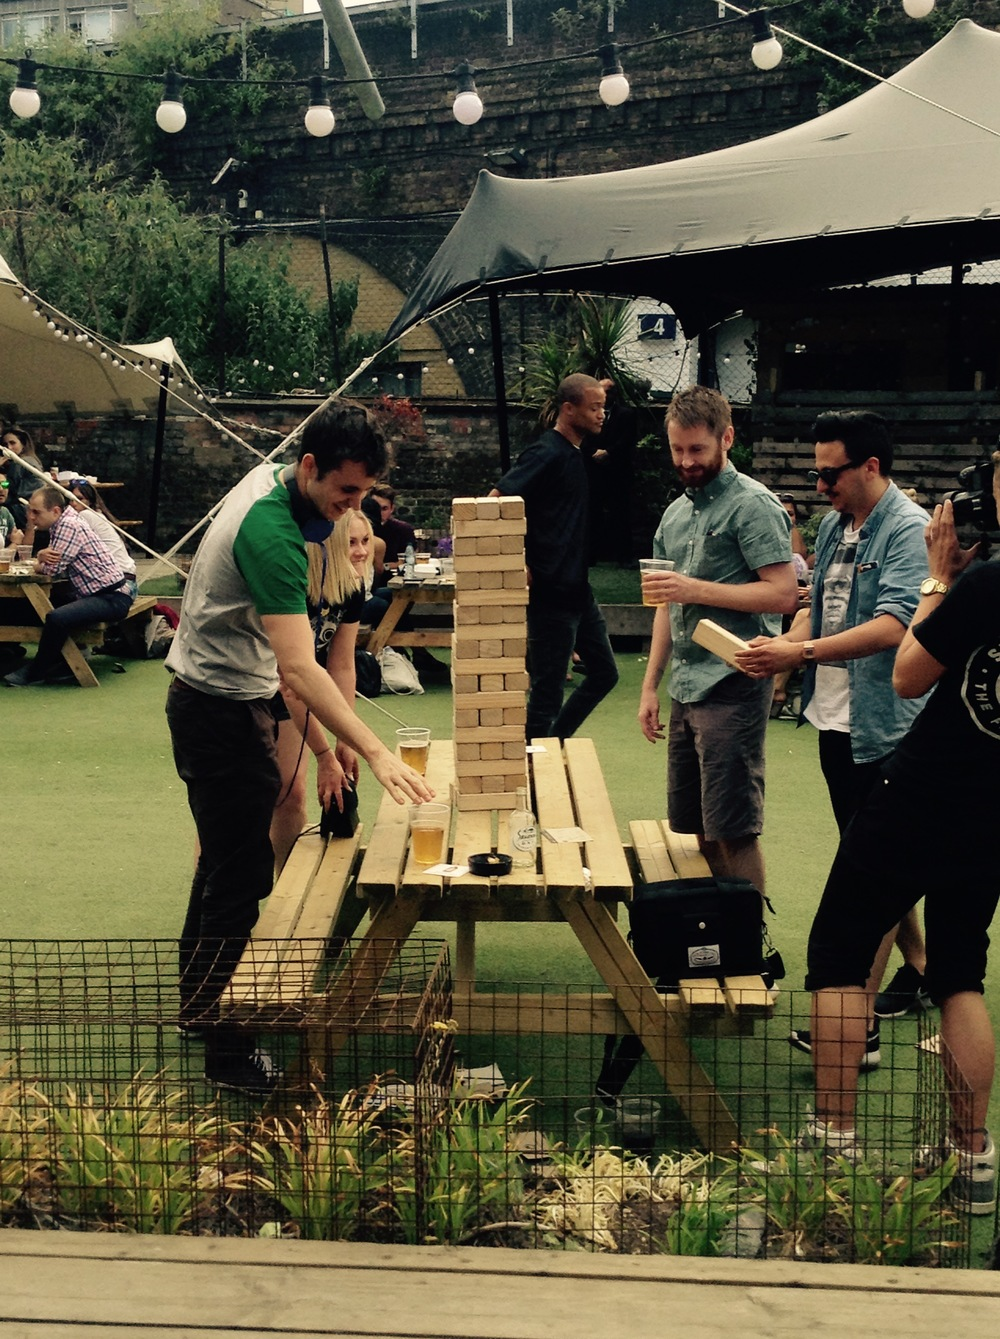 Beer fuelled giant jenga? Yes please!